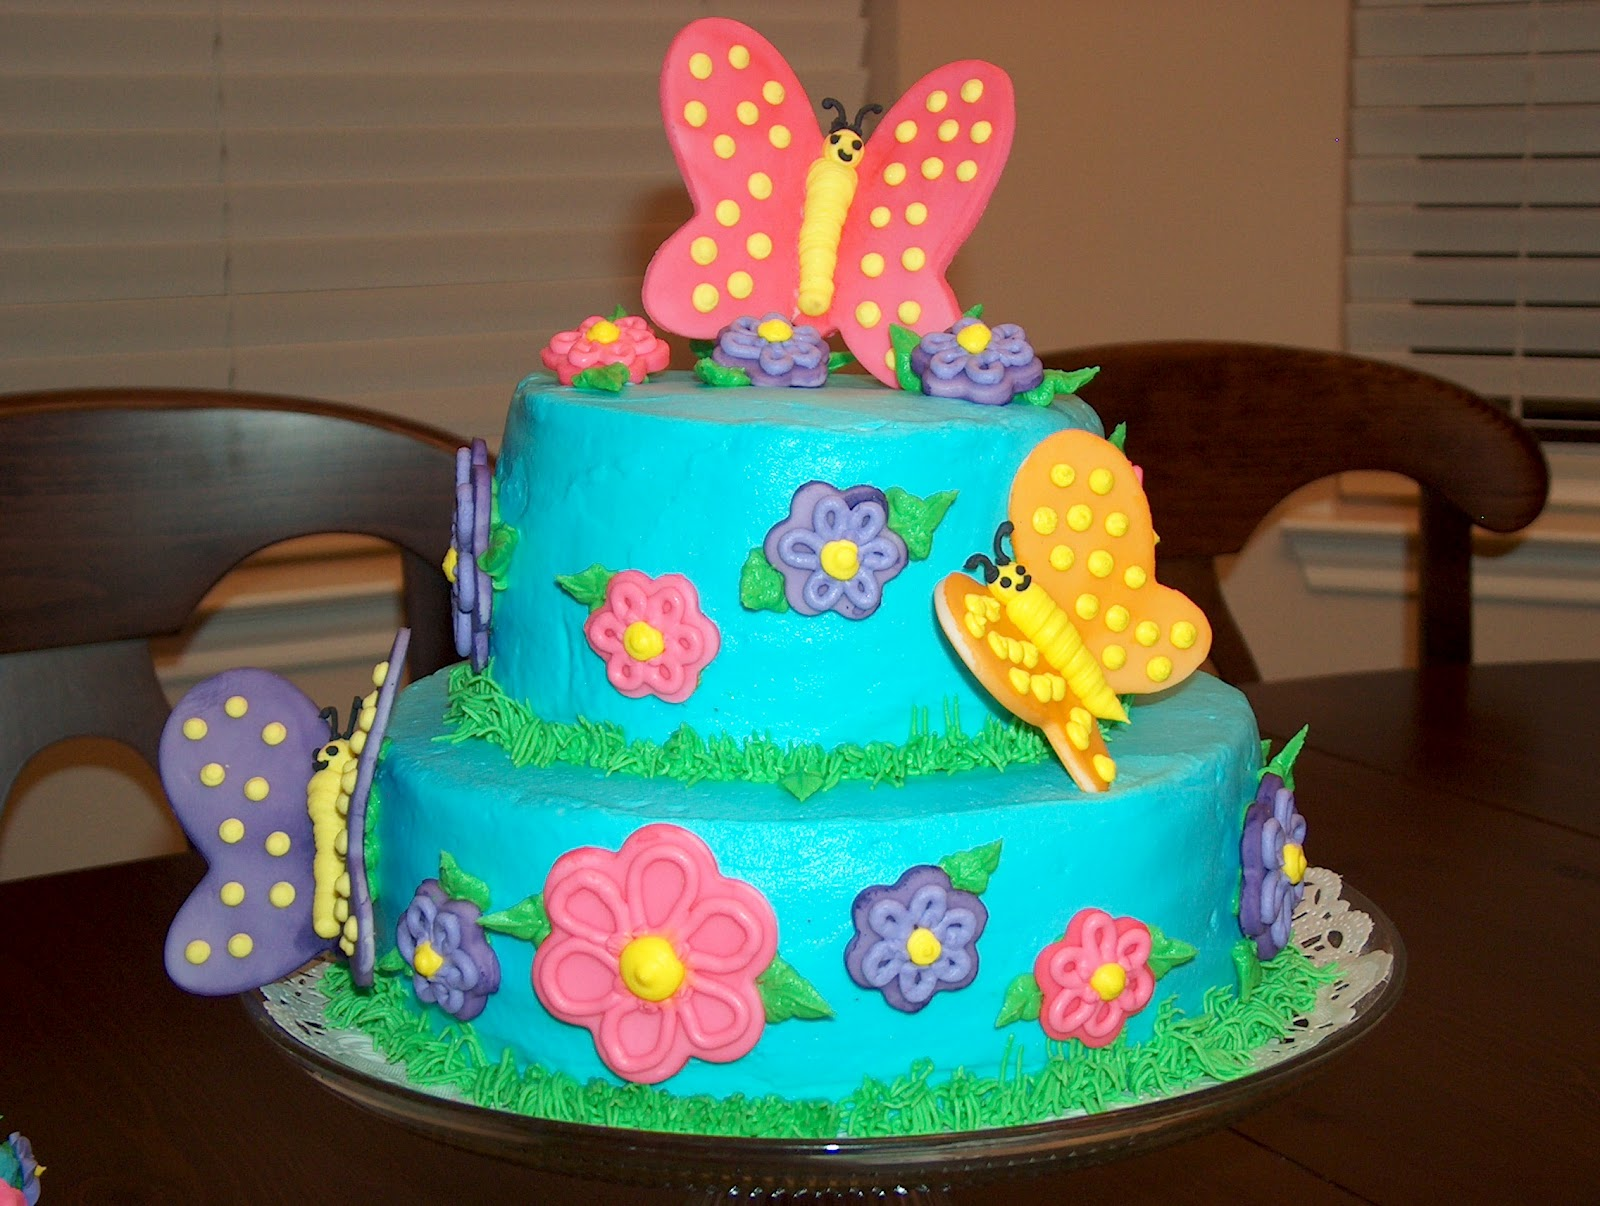 Cake Design Decoration : Themed Cakes, Birthday Cakes, Wedding Cakes: ButterFly ...